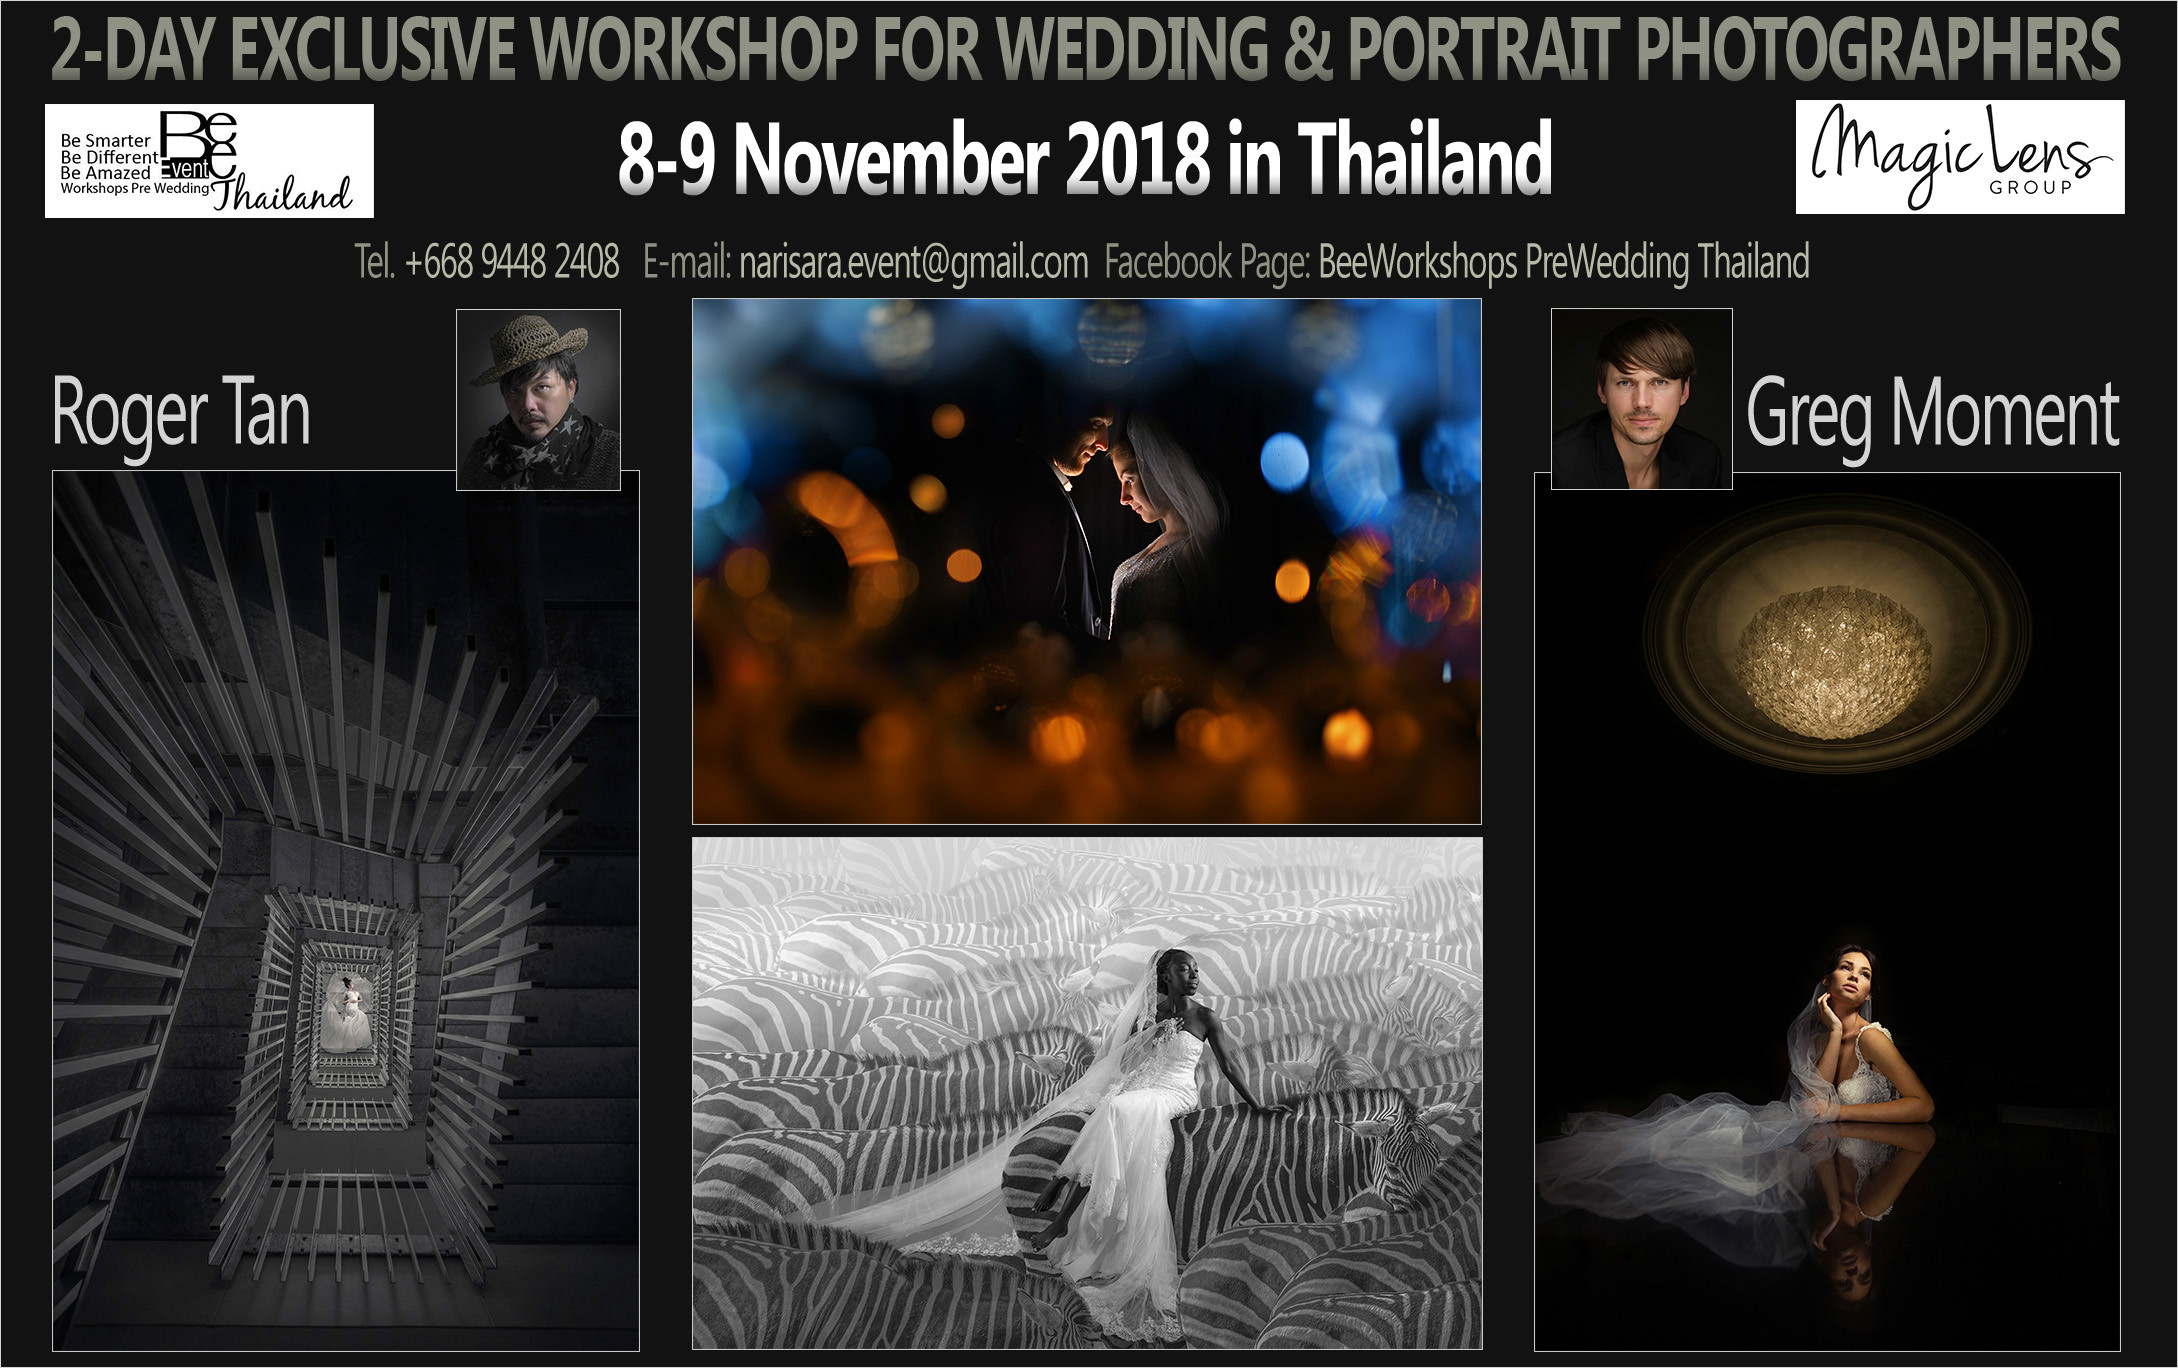 Thailand - 08/09.11.2018. with Roger Tan